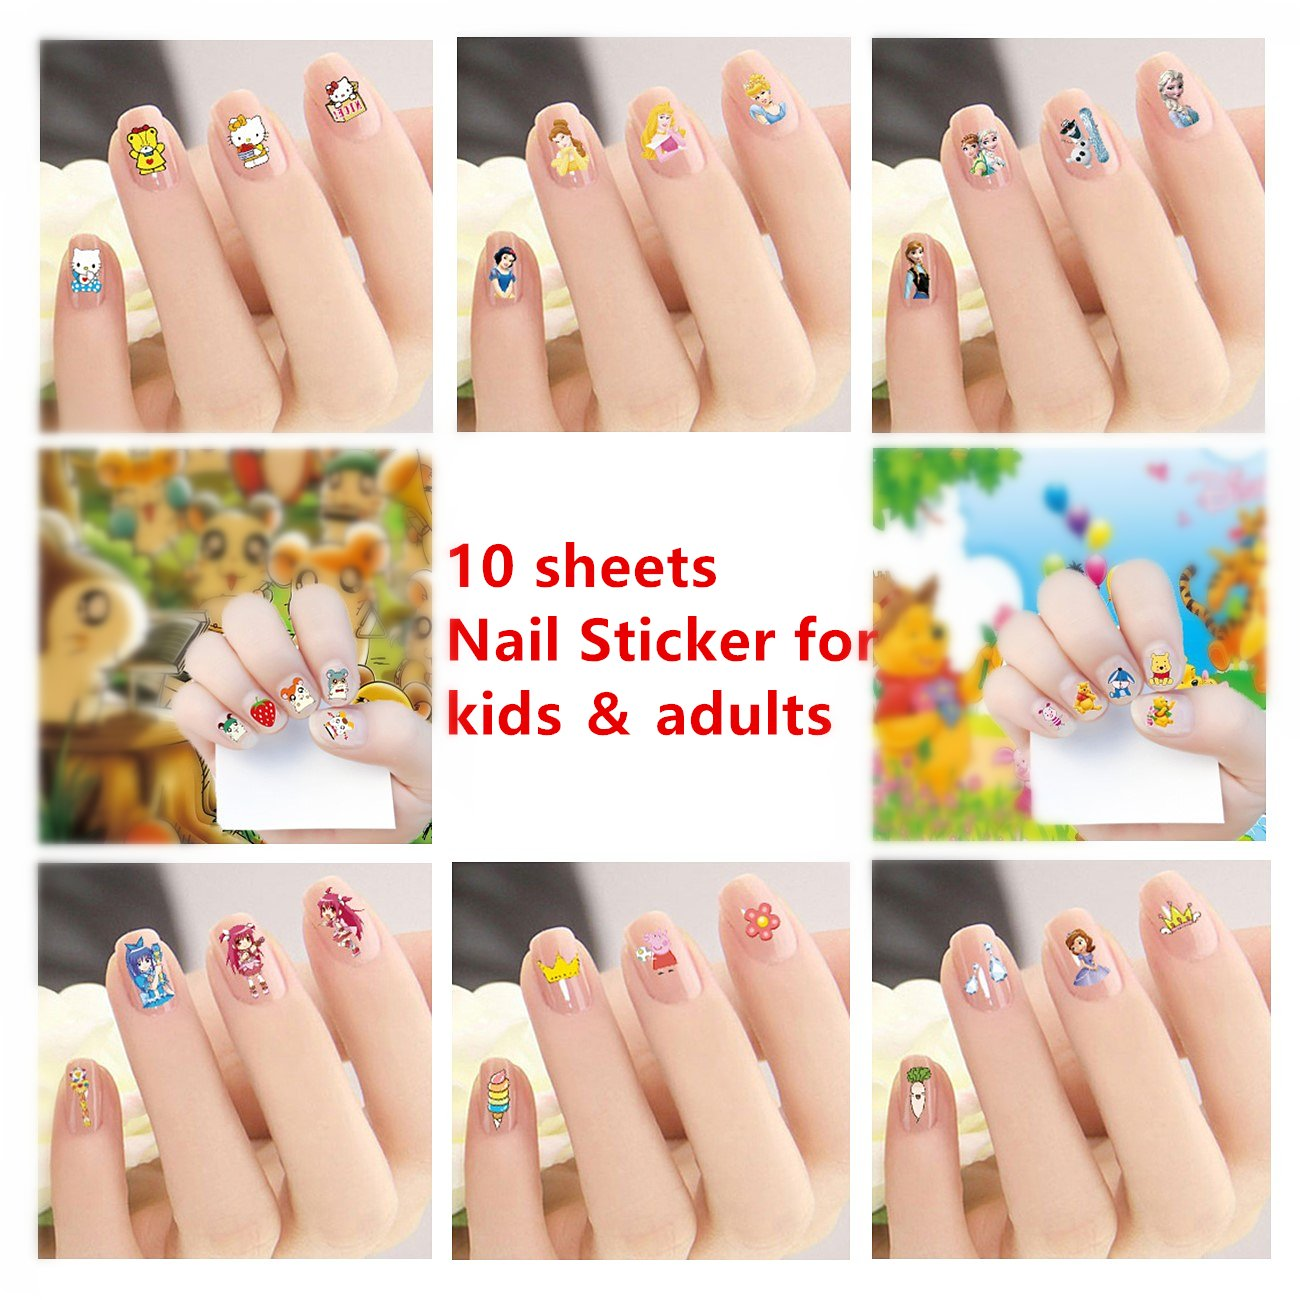 6 Sheets Waterproof Nail Stickers 3D Art Nail Sticker for Women Nail Art Transfer Decals Sticker Glitter Series DIY Nail Polish Strips Wraps for Party (style2)